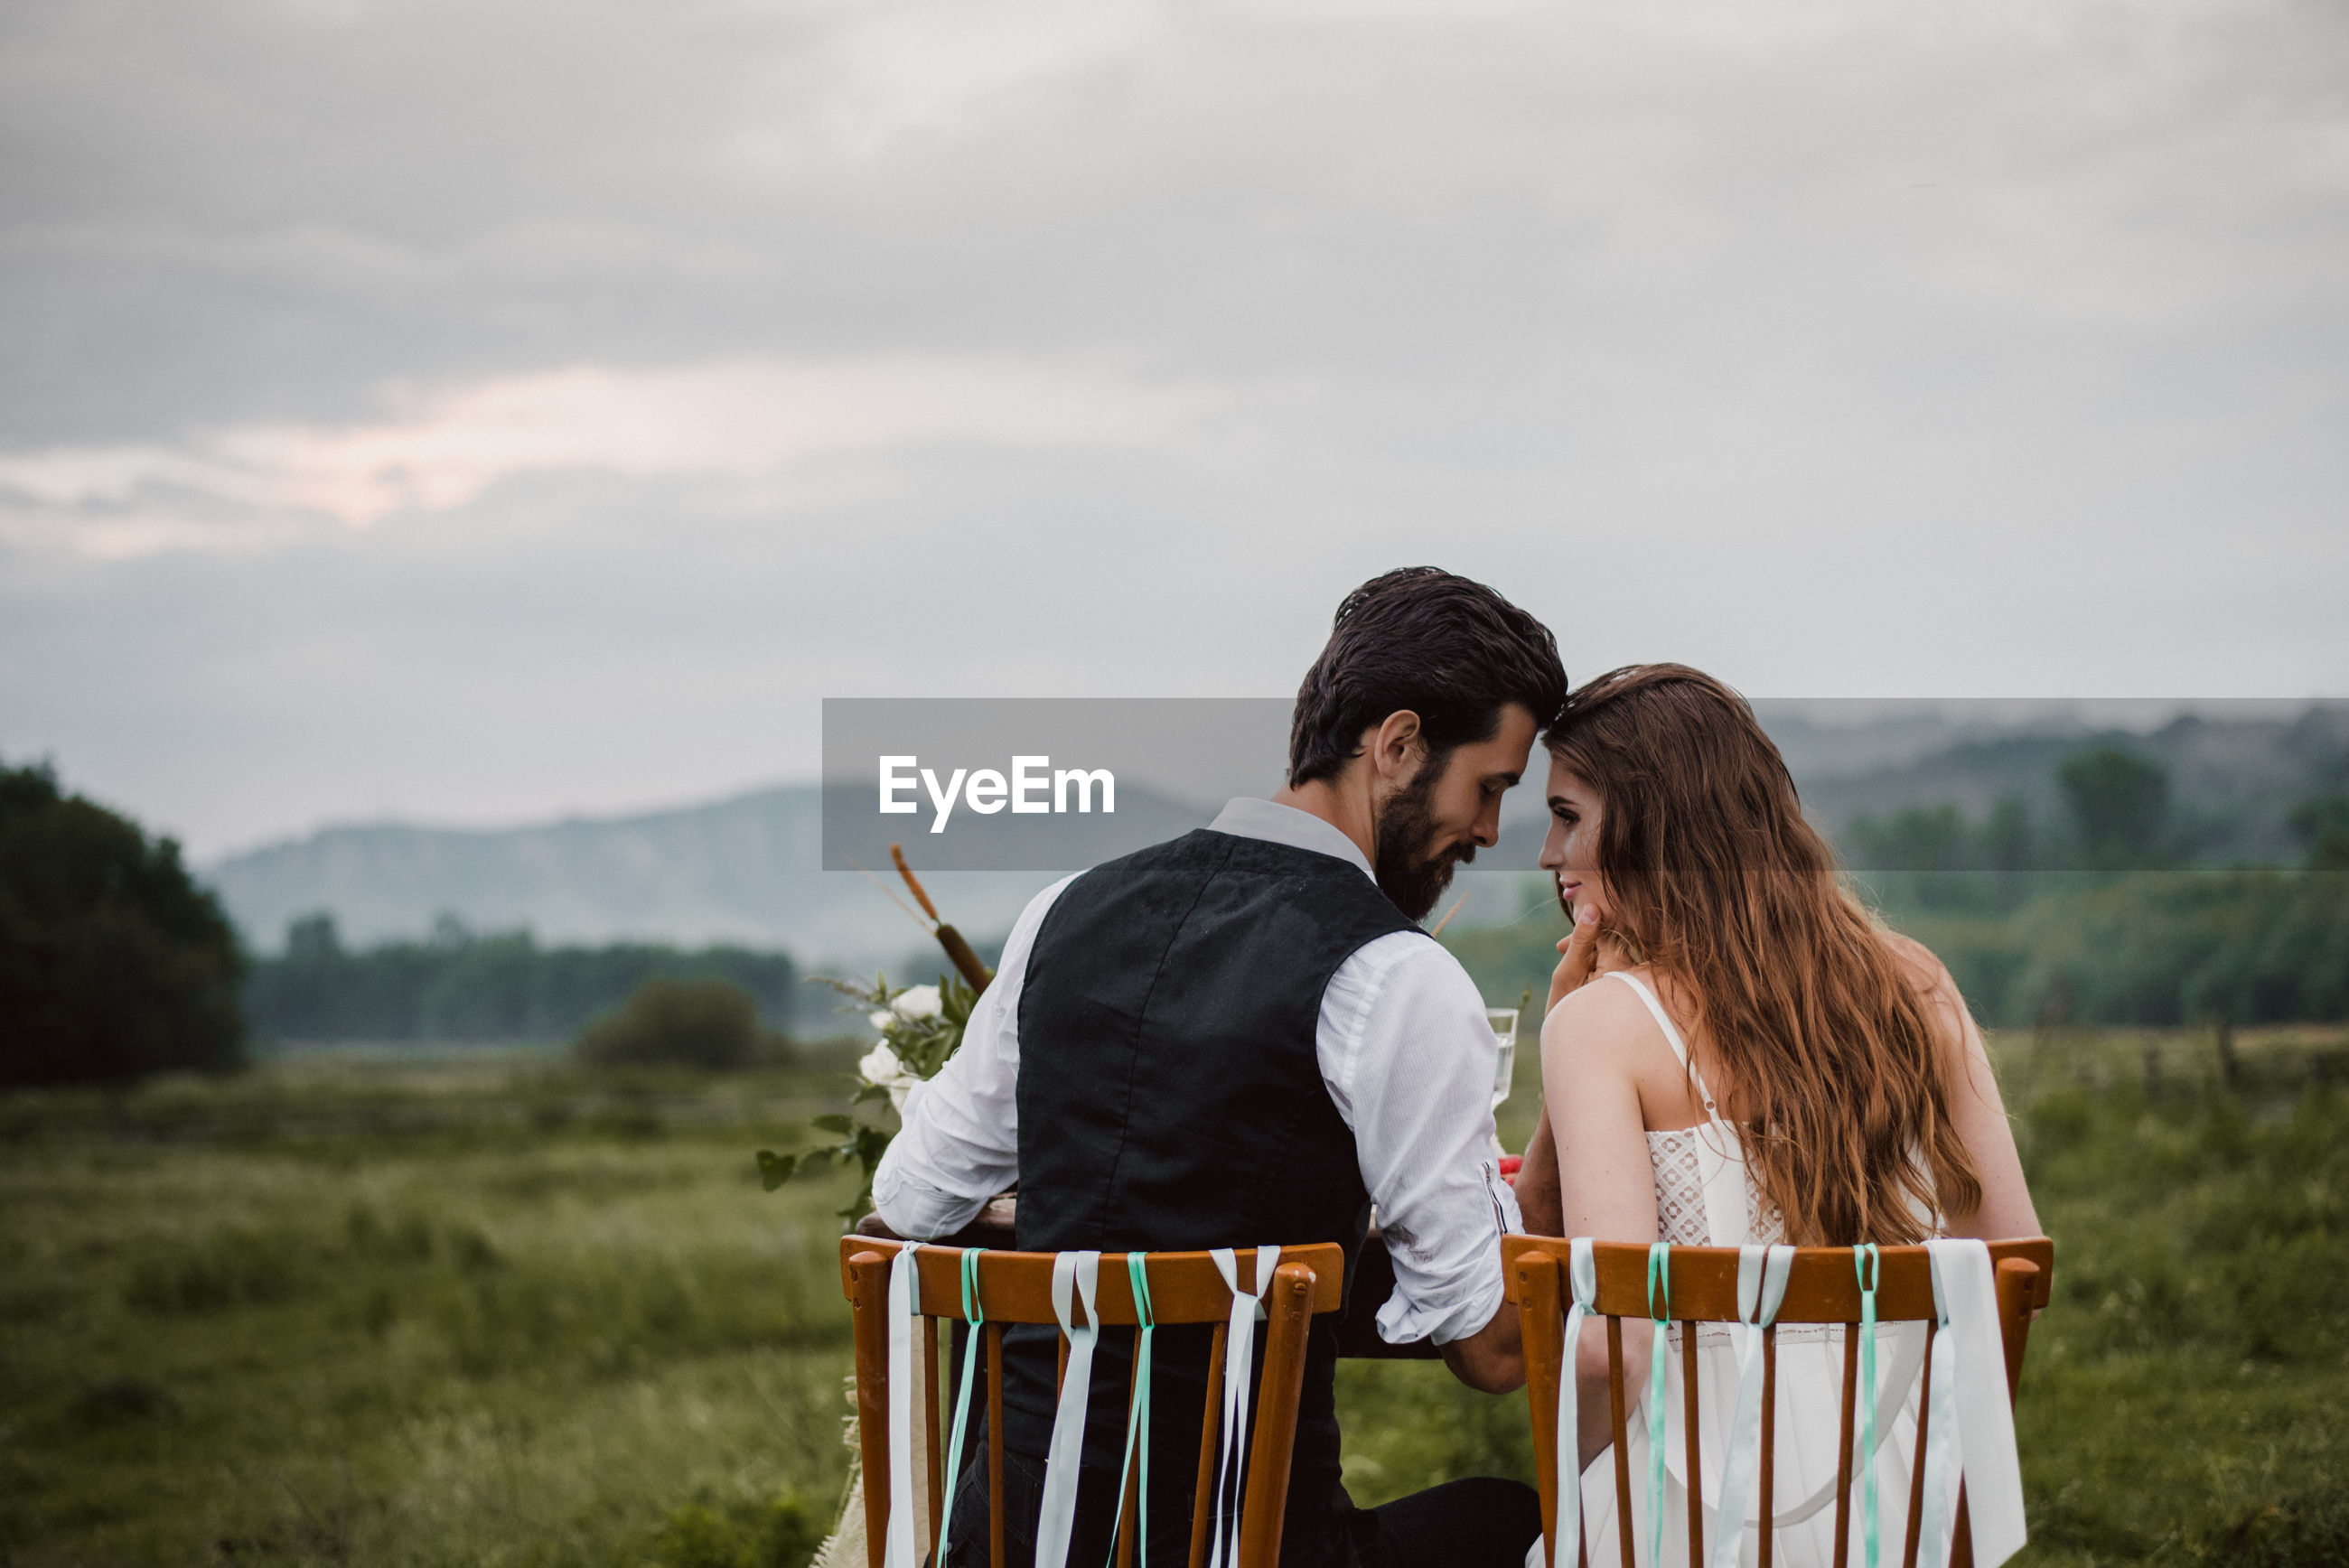 Rear view of bride and bridegroom sitting on chairs at field